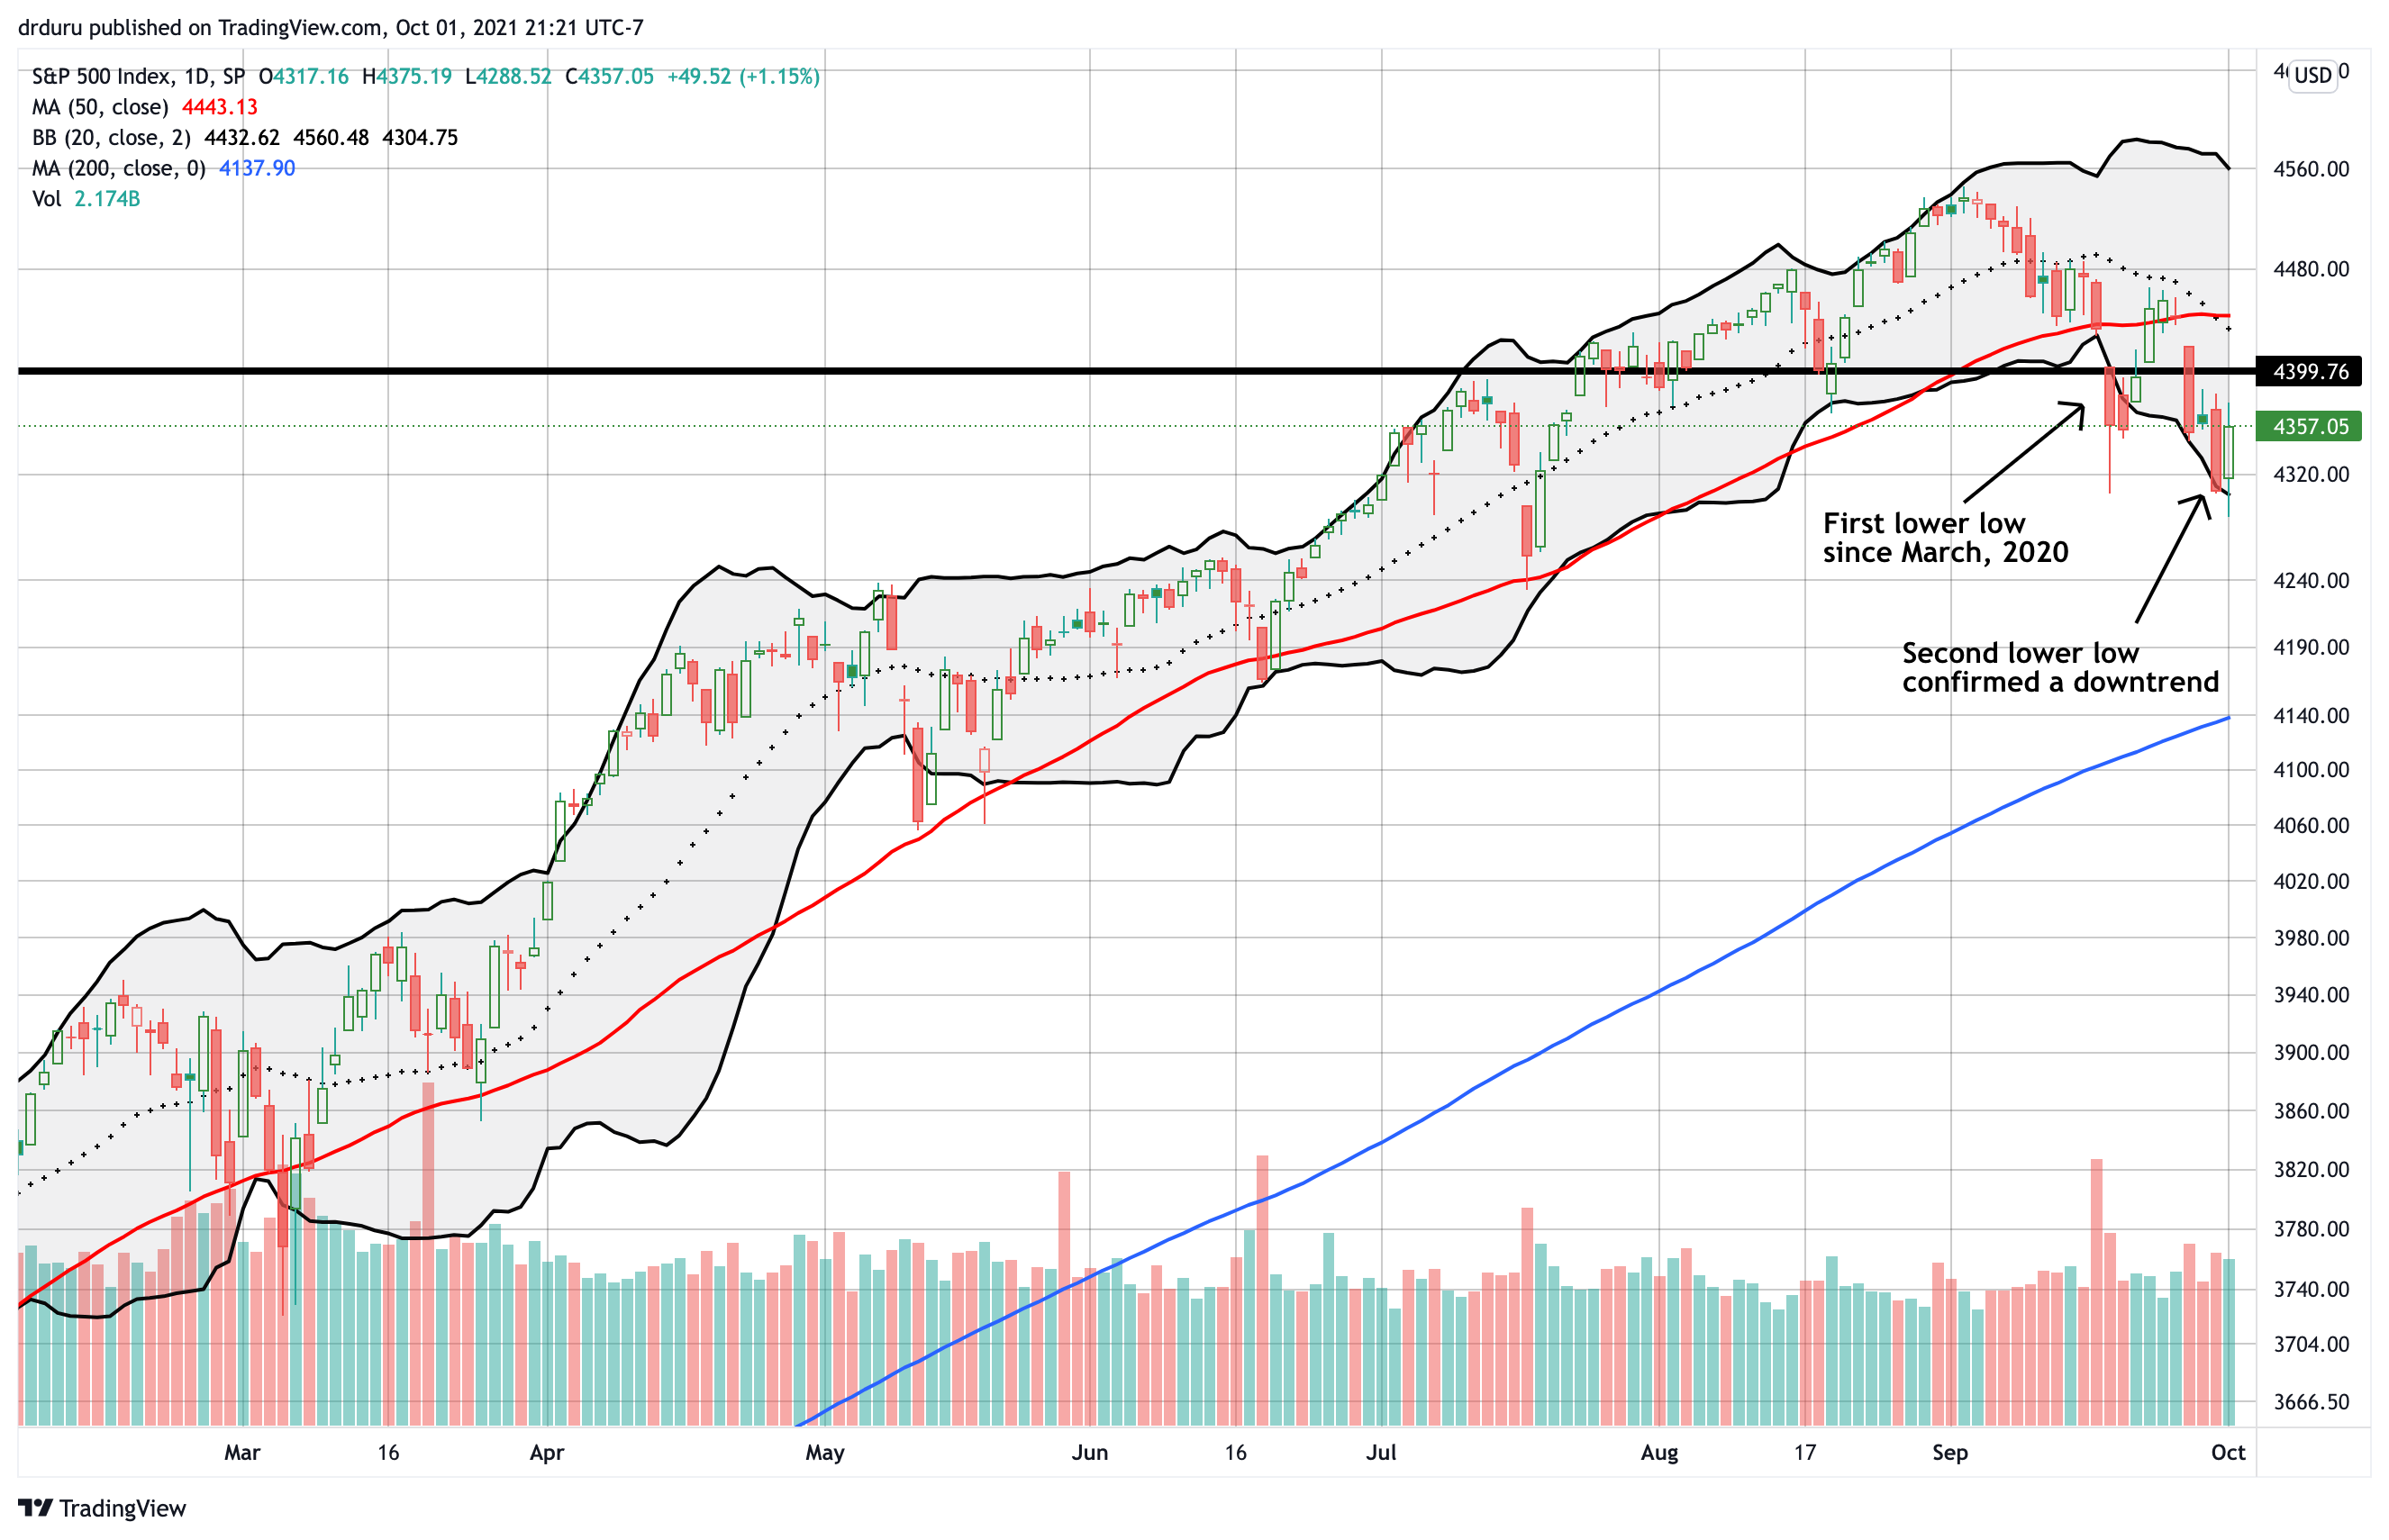 The S&P 500 (SPY) is sliding down its first true downtrend since March, 2020